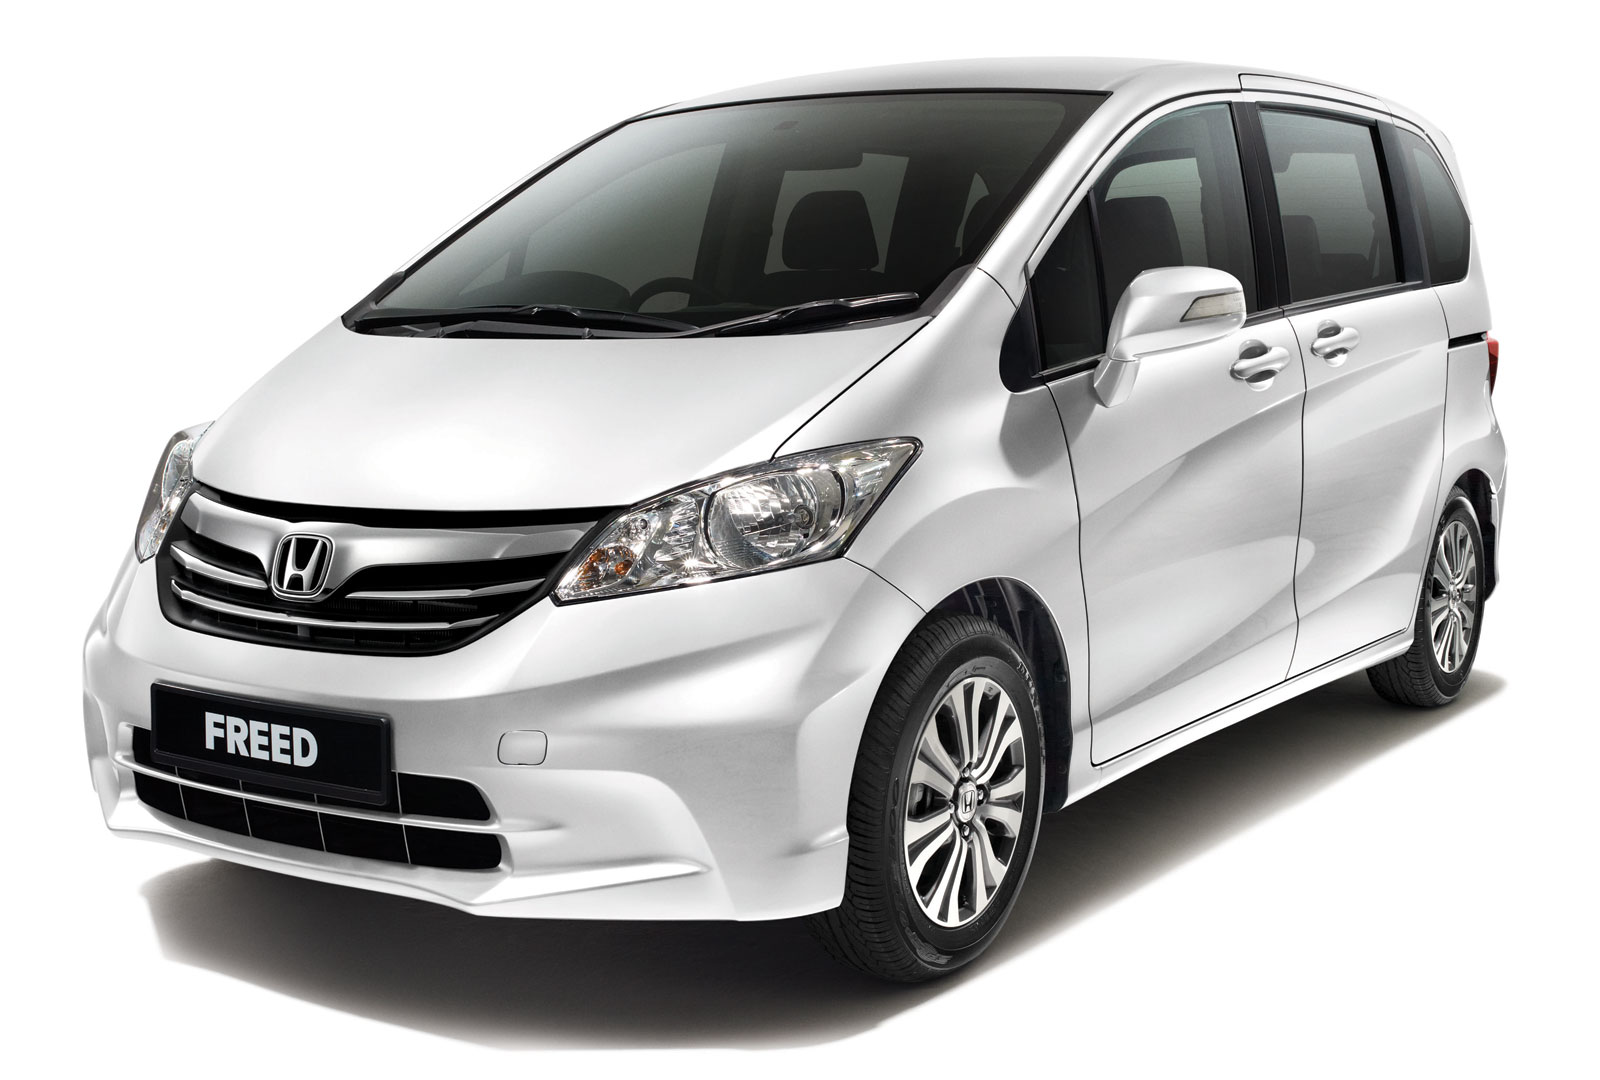 New Honda Freed to debut in Japan this year - CEO